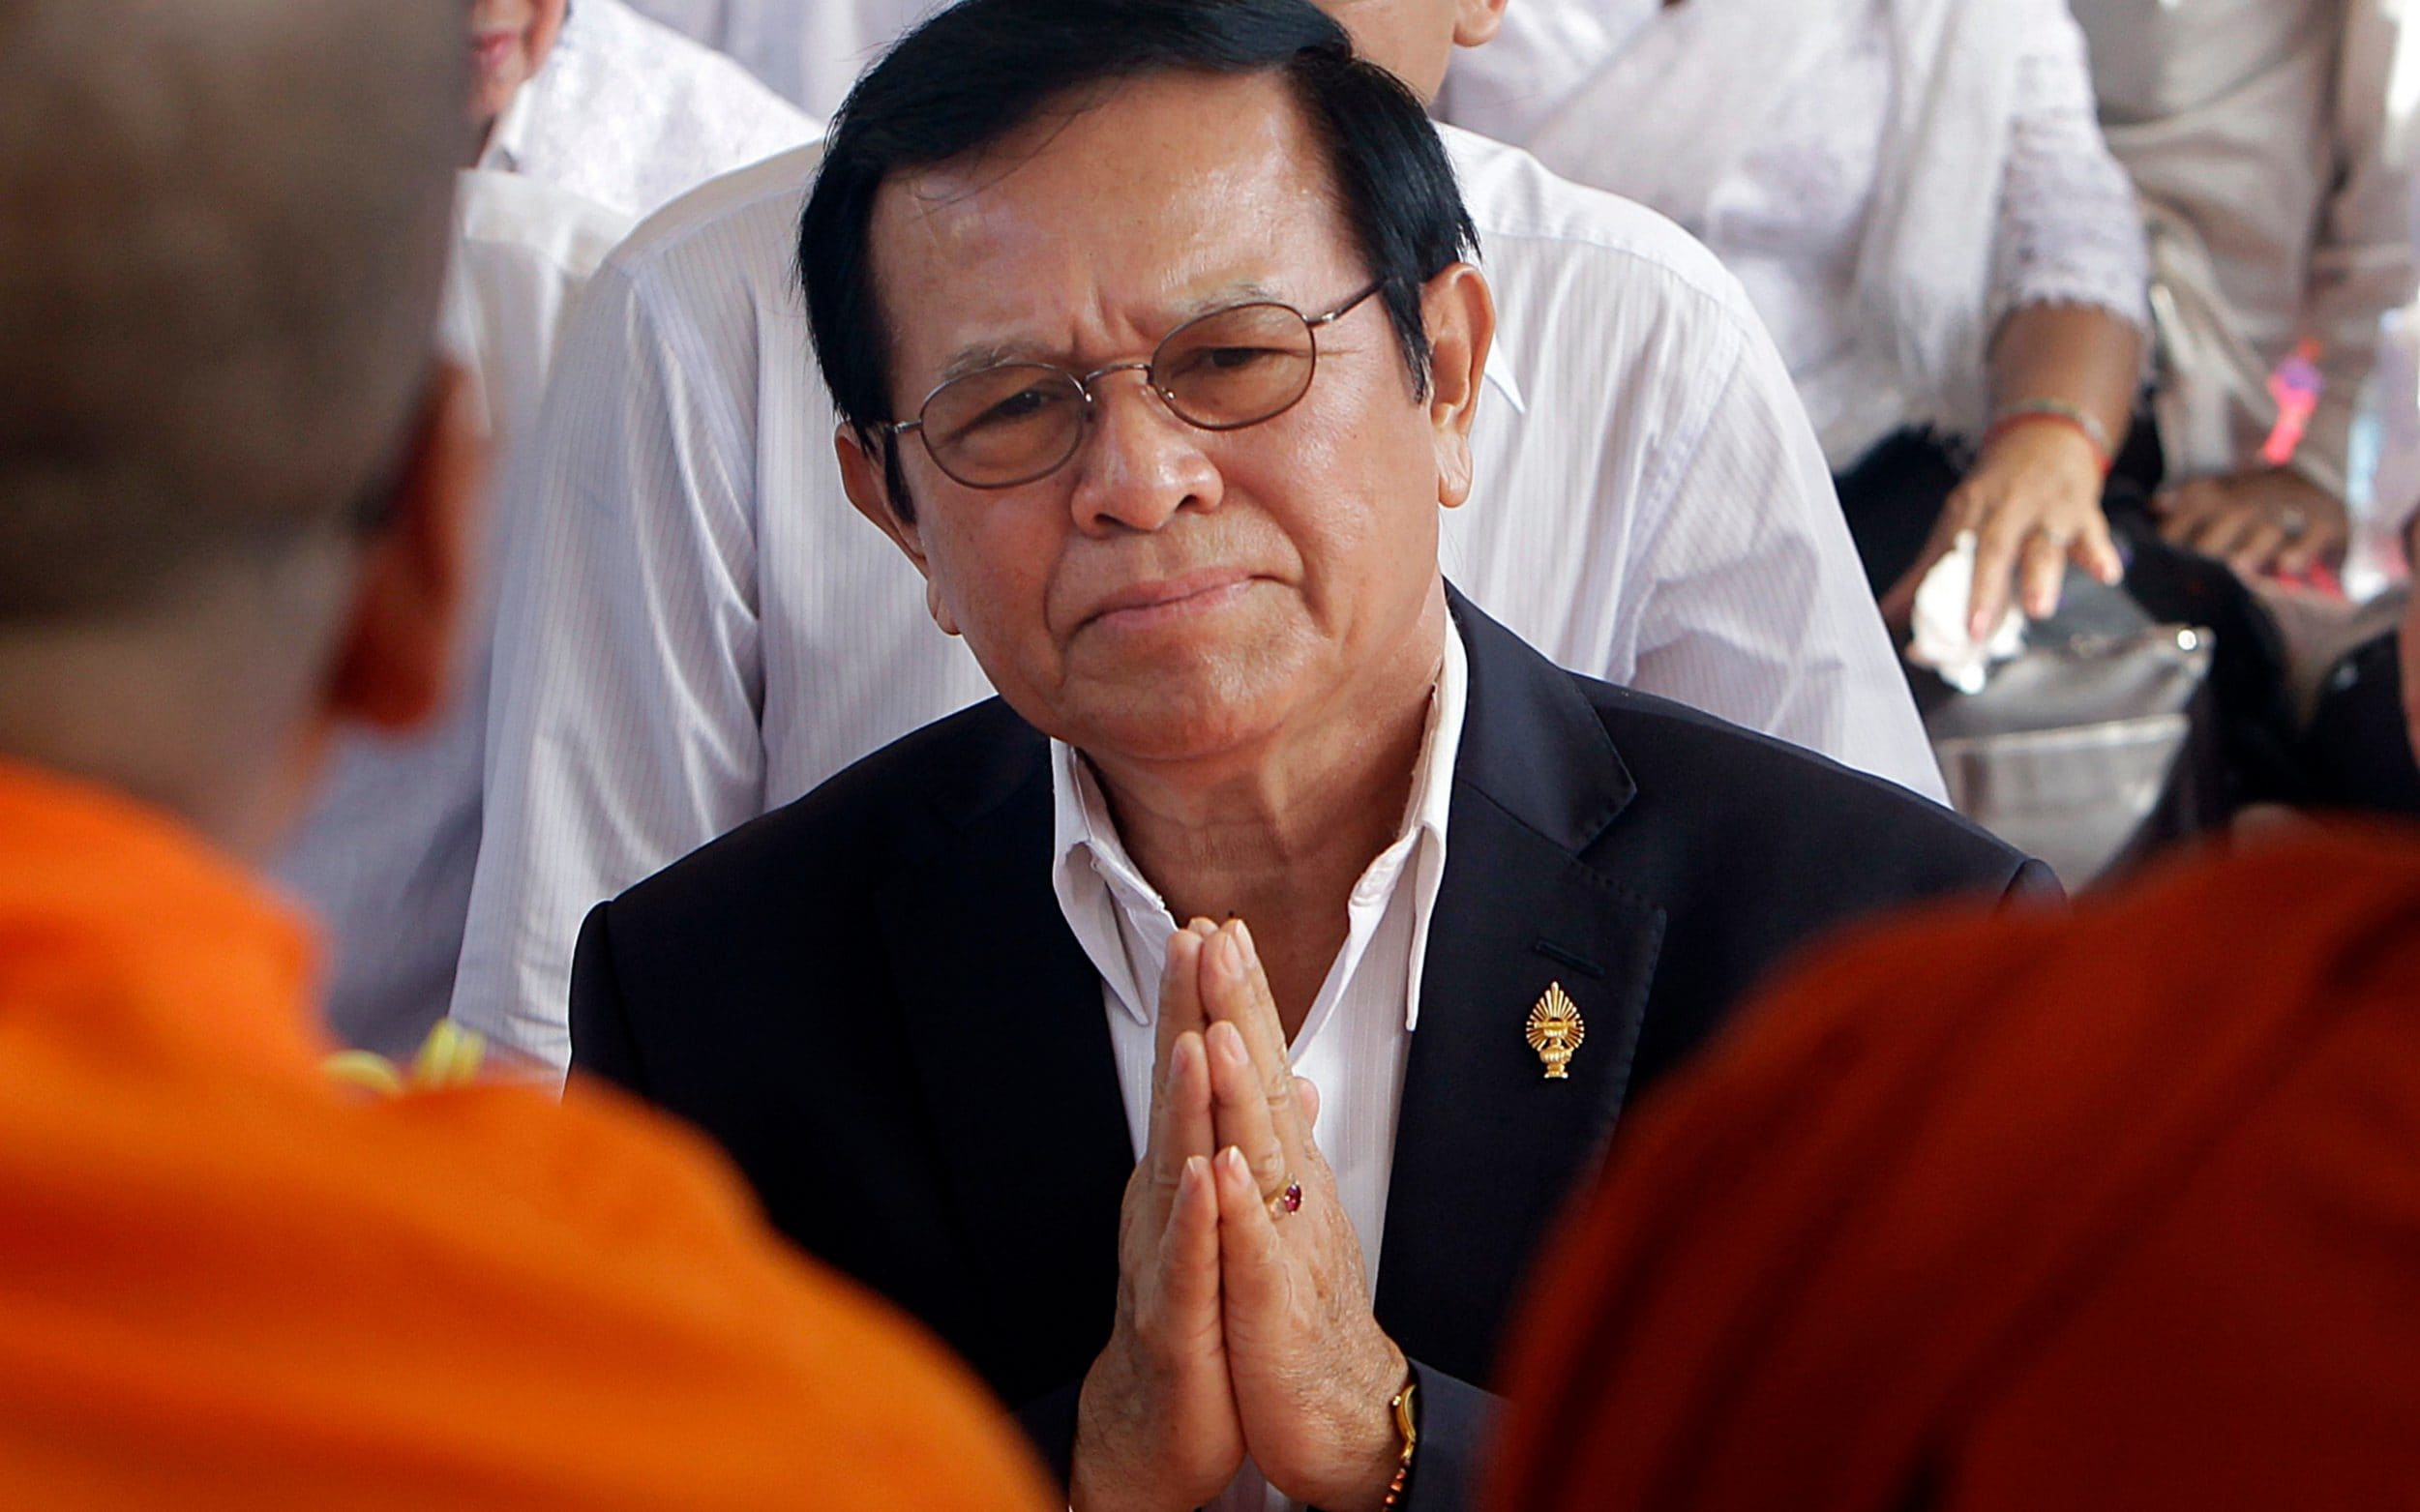 In this March 30, 2017, file photo, leader of the opposition Cambodia National Rescue Party Kem Sokha prays during a Buddhist ceremony to mark the 20th anniversary of the attack on anti-government protesters in 1997, in Phnom Penh, Cambodia